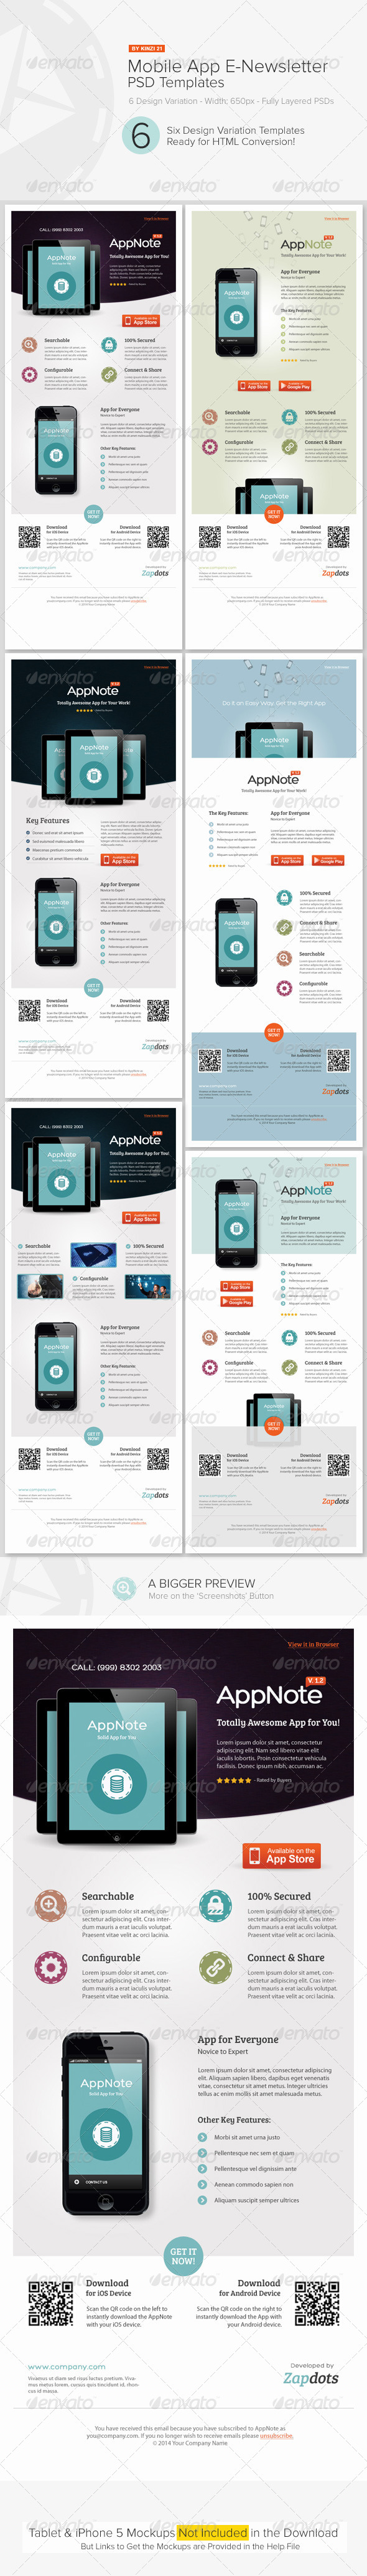 Mobile App E-Newsletter PSD Templates - E-newsletters Web Elements